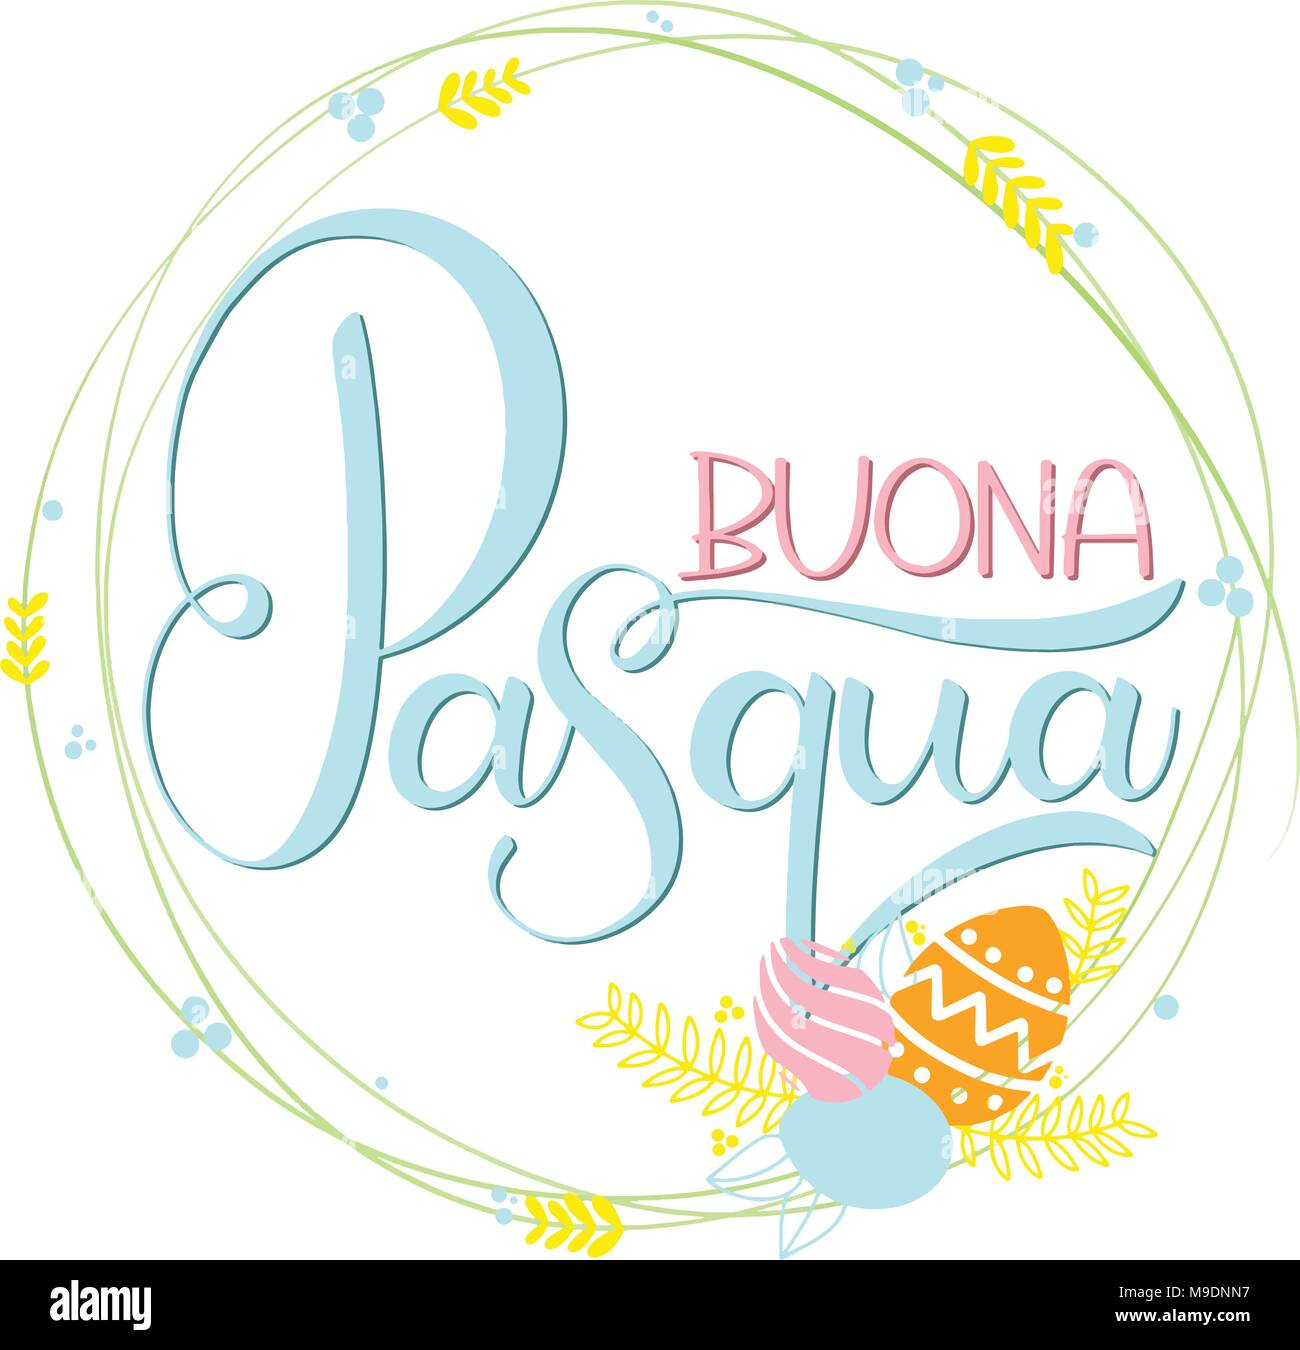 Buona pasqua stock photos buona pasqua stock images alamy buona pasqua colorful lettering happy easter colorful lettering in italian hand written easter phrases m4hsunfo